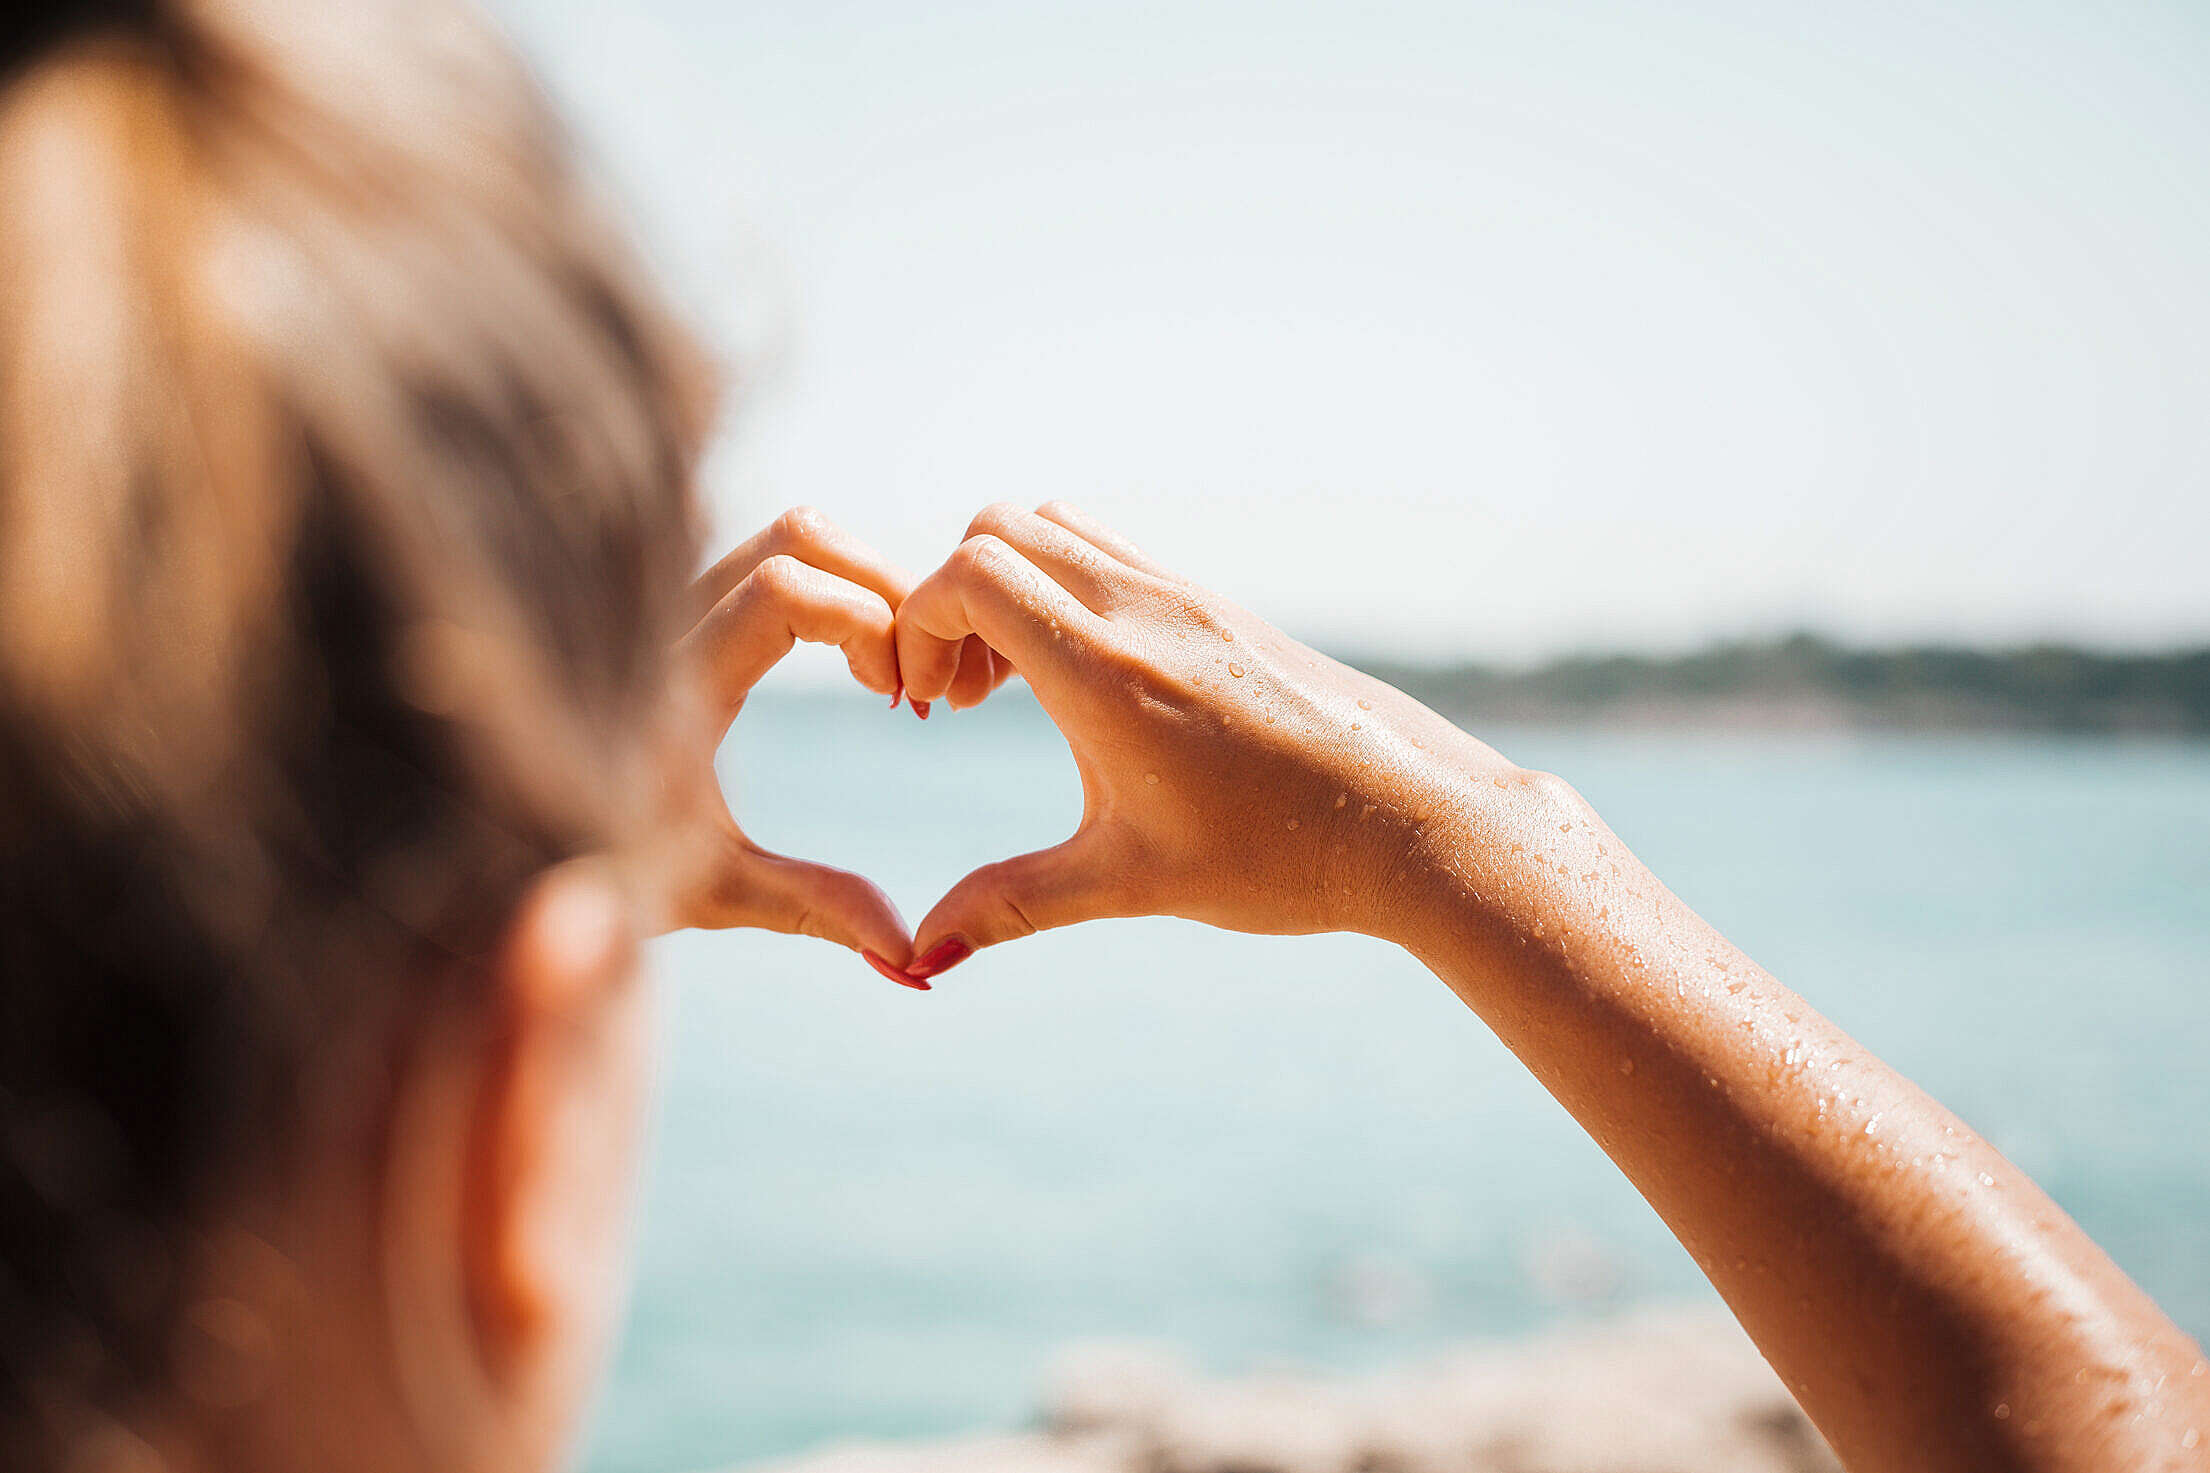 Hand Love Heart by the Sea Free Stock Photo